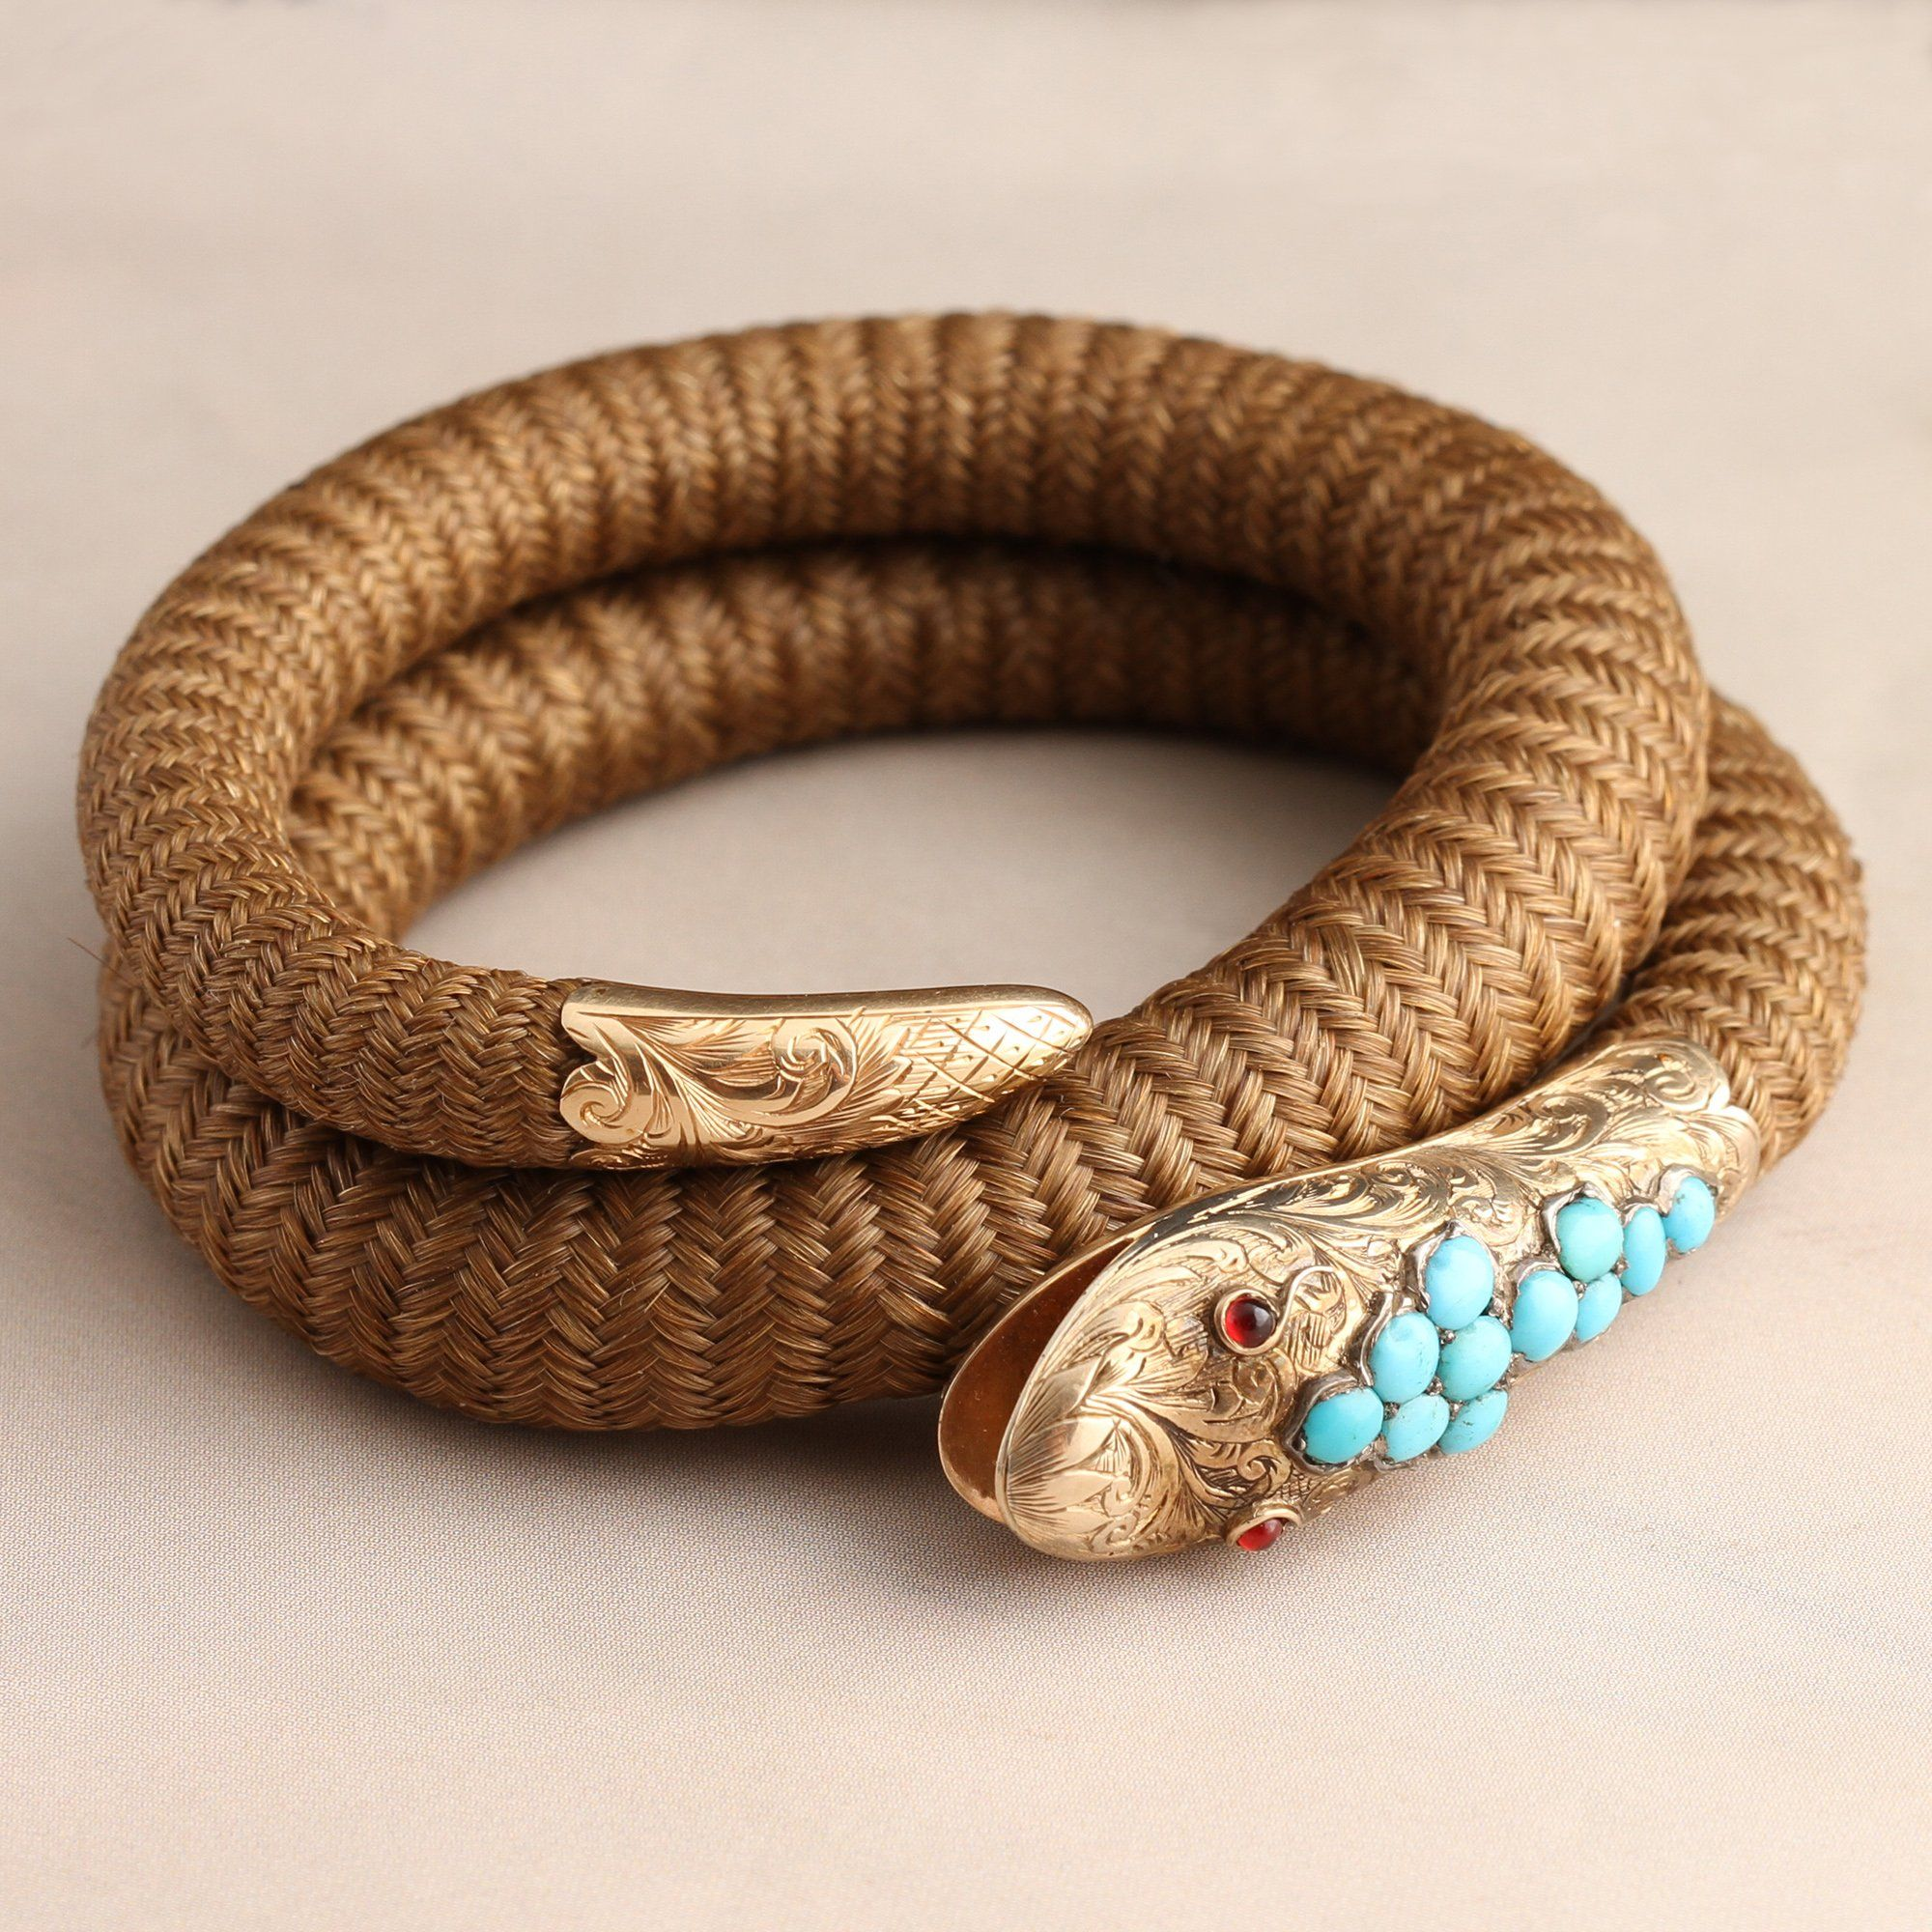 Victorian Coiled Serpent Hair Bangle with Garnets and Turquoise